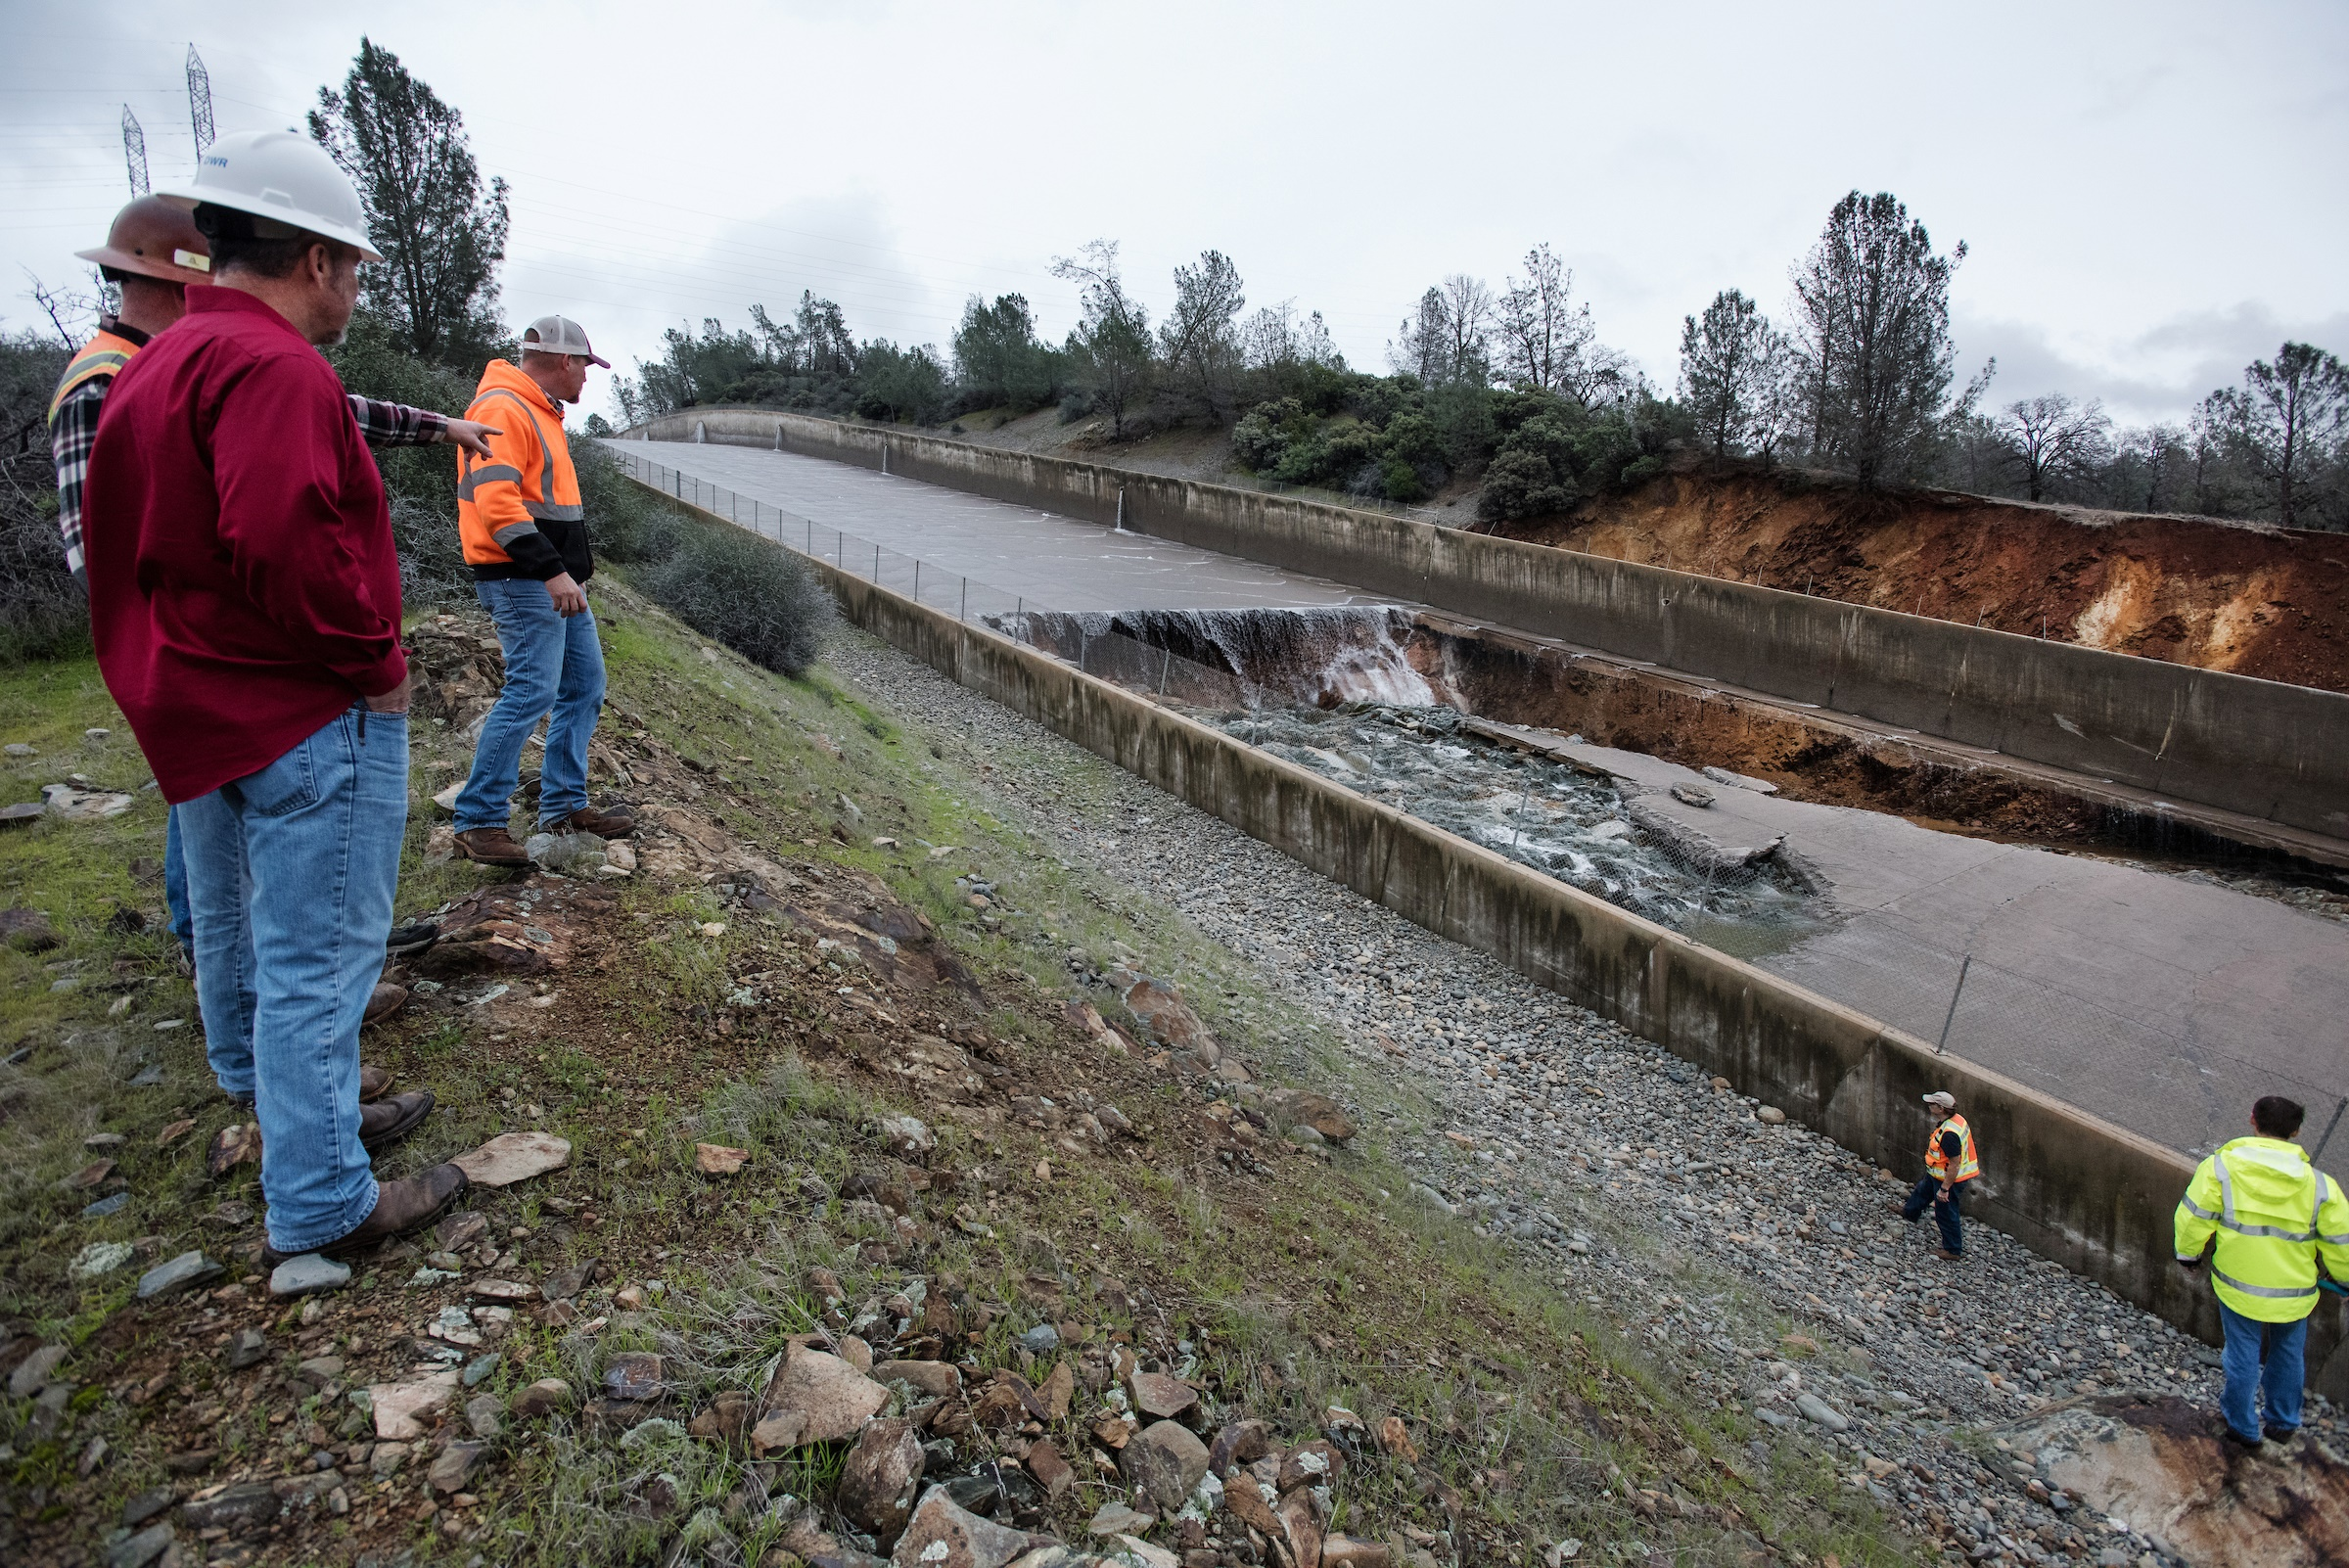 Sinking Land Causes California Water Chokepoint Circle